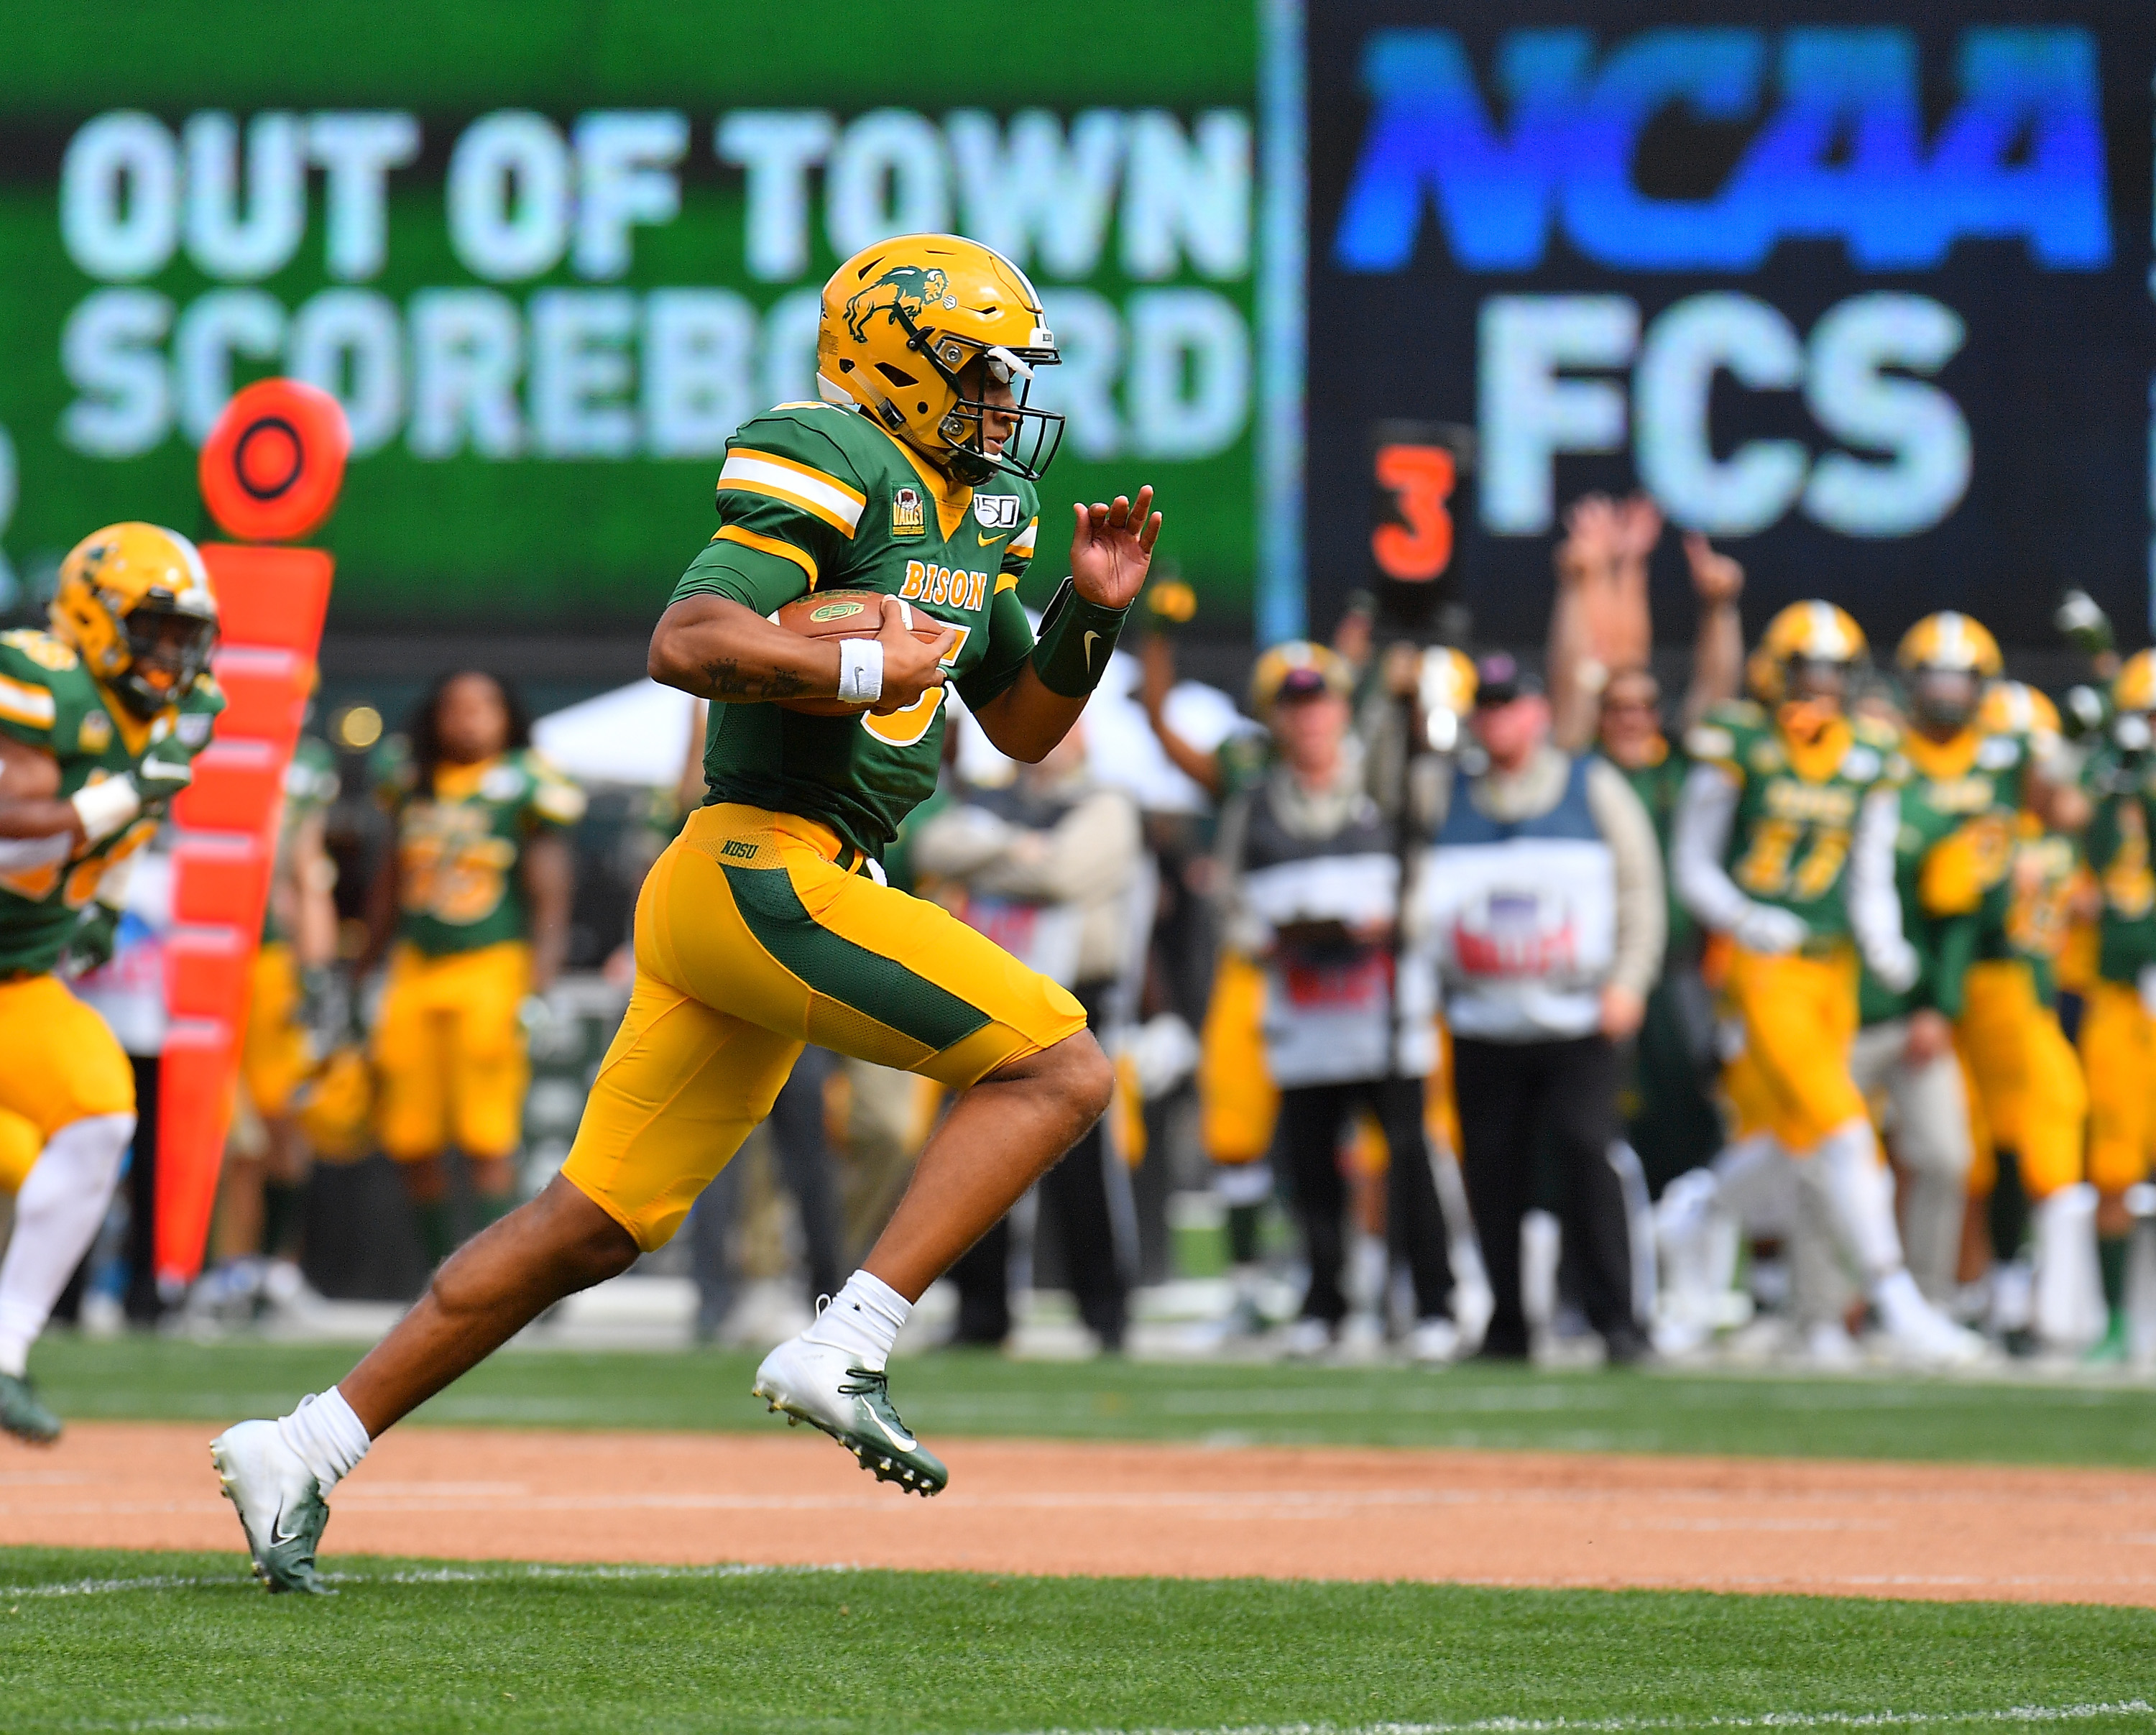 Quarterback Trey Lance #5 of the North Dakota State Bison runs for a touchdown against the Butler Bulldogs during their game at Target Field on August 31, 2019 in Minneapolis, Minnesota.